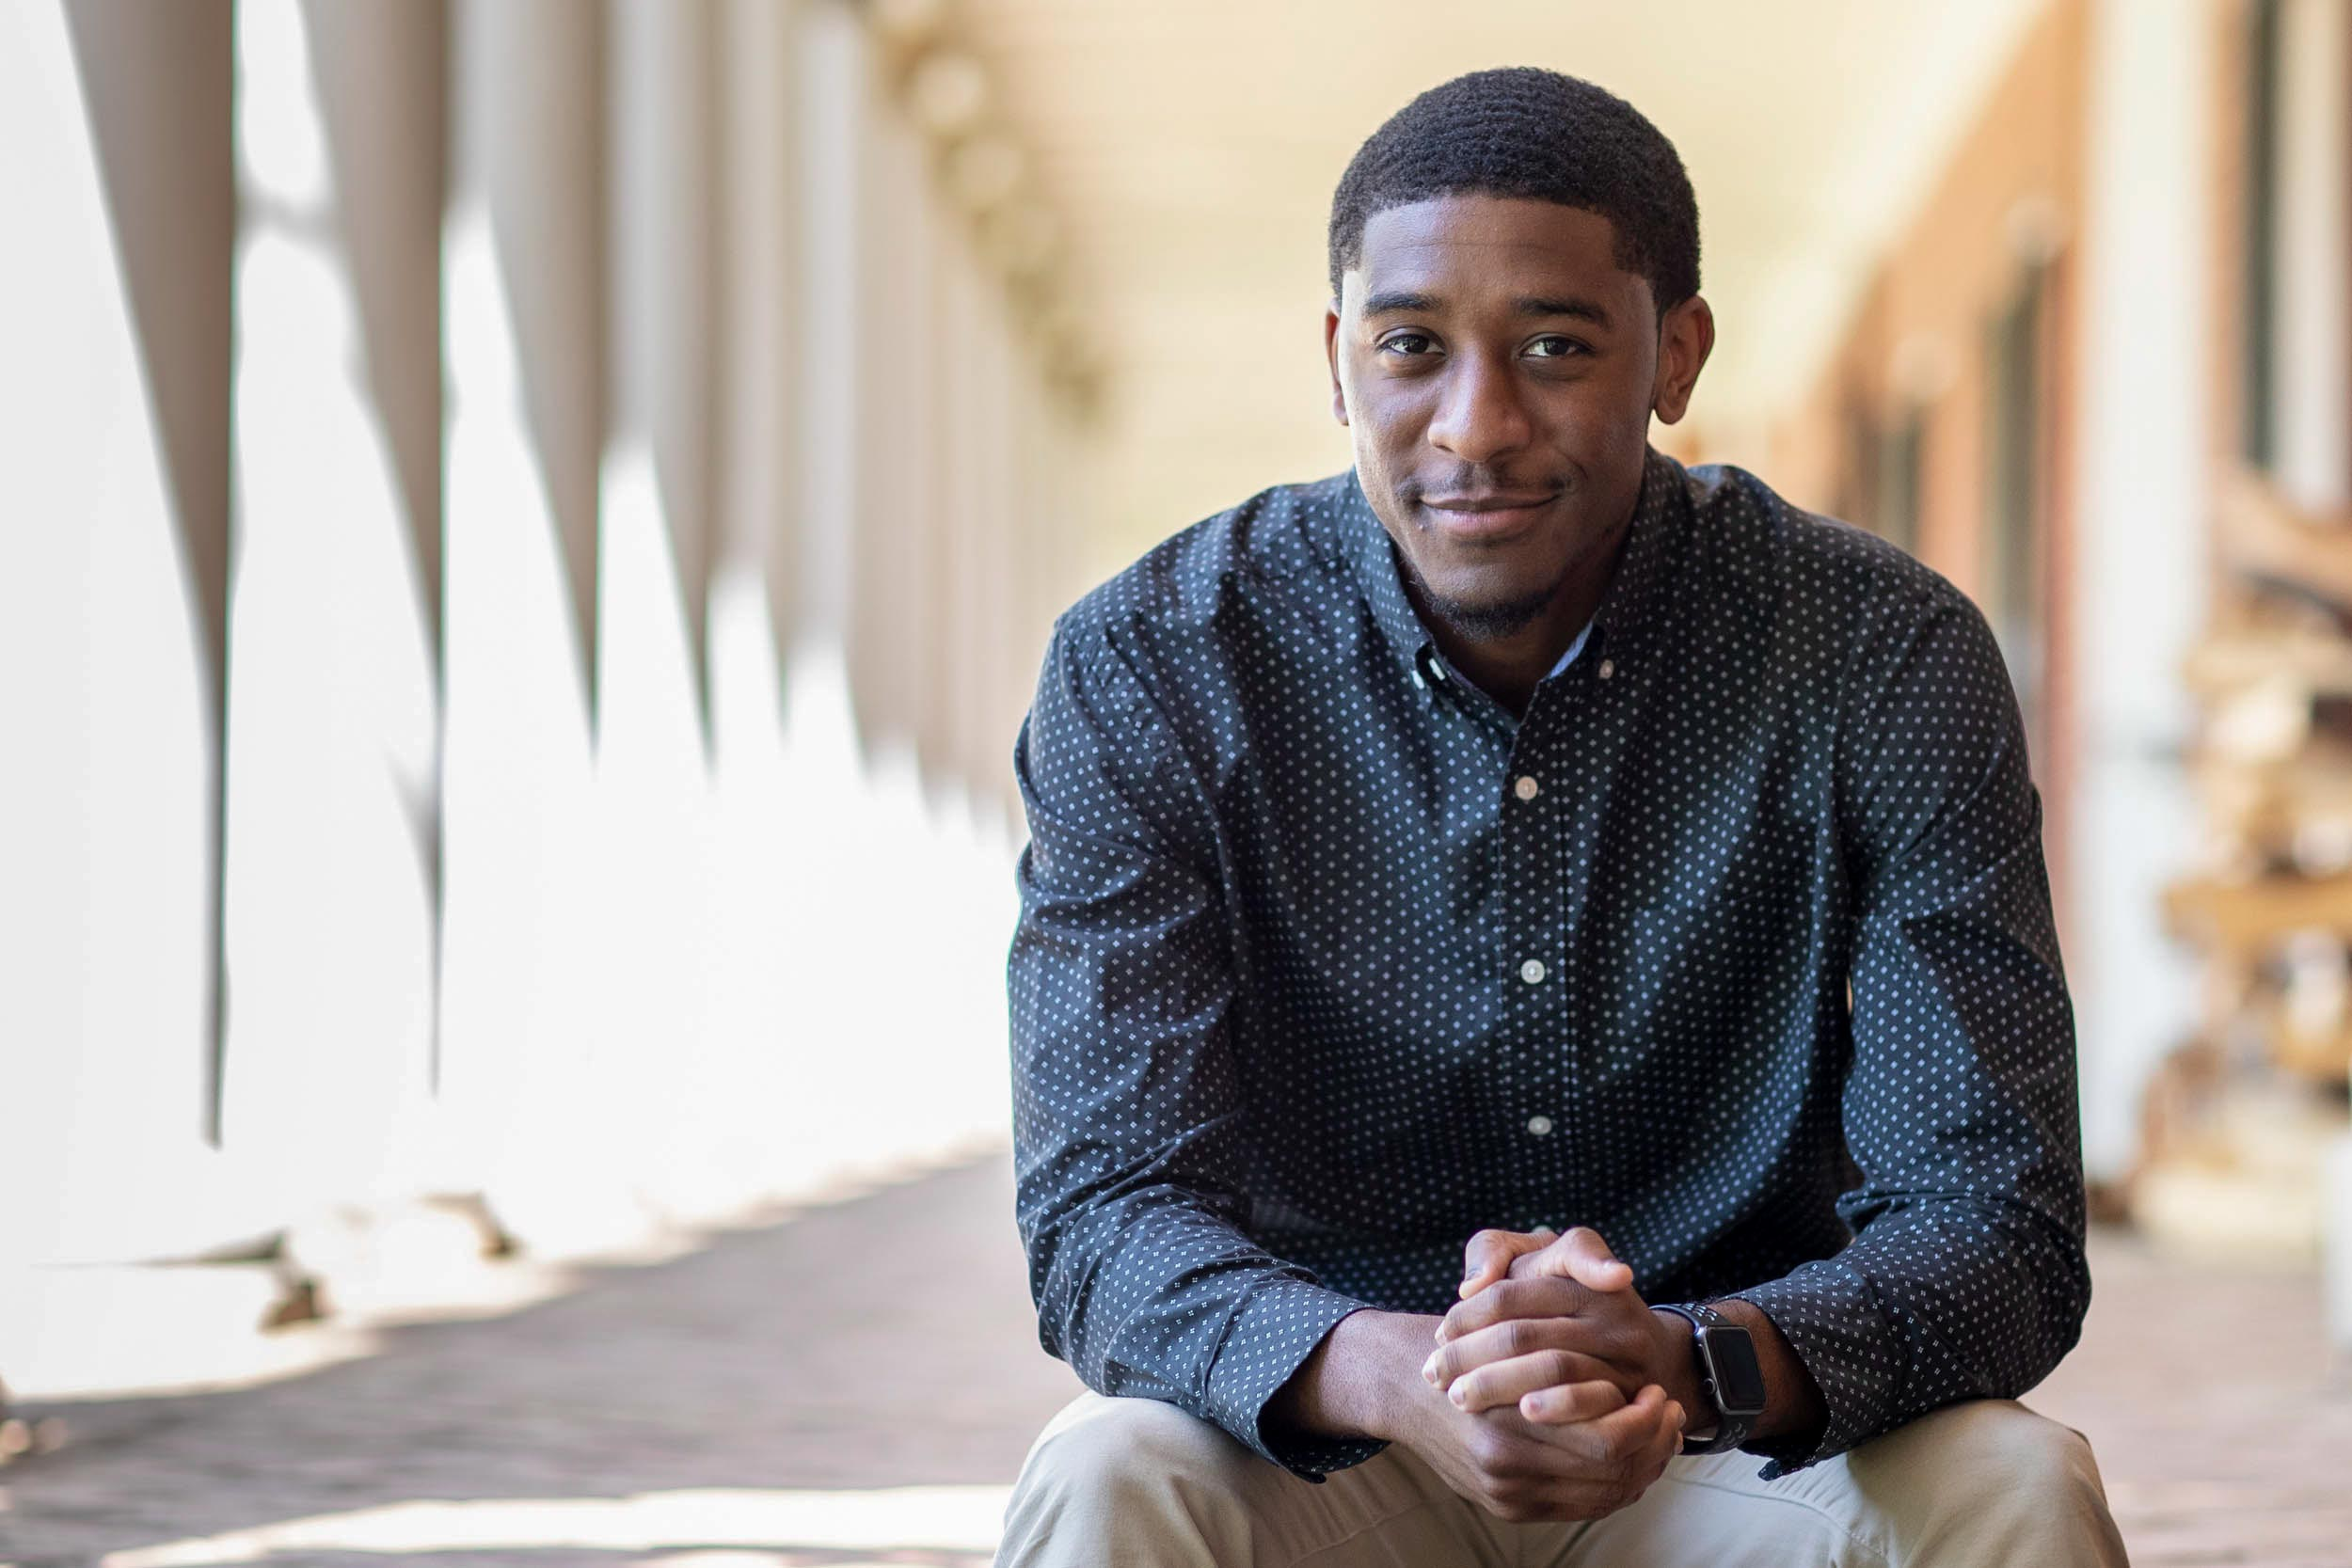 For as long as he can remember, Rambert Tyree's grandparents have emphasized the importance of education.